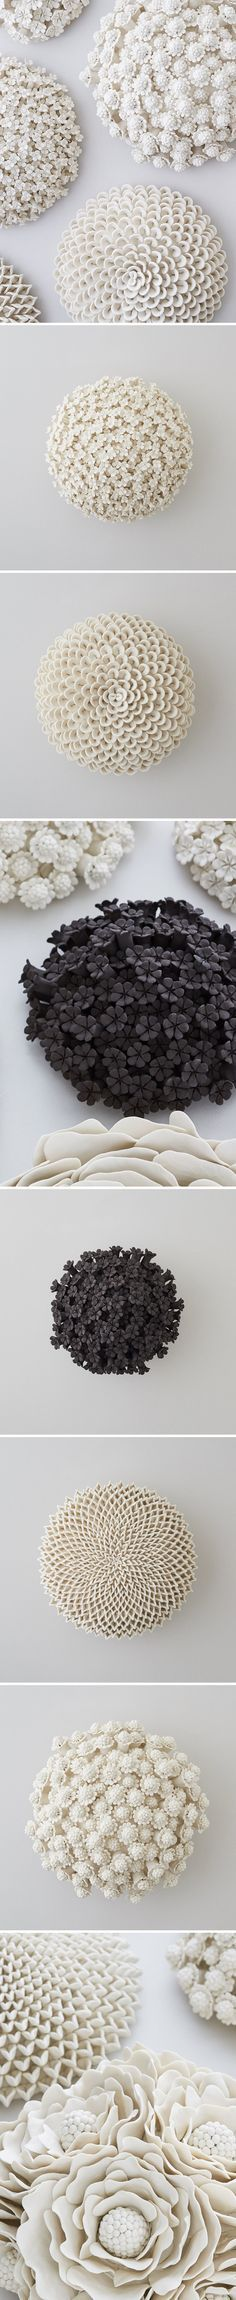 ARTISTS   vanessa hogge   For more inspirations or amazing pictures of Artistic installations,contemporary art, artists, click on the photo or www.bocadolobo.com #bocadolobo #luxuryfurniture #exclusivedesign #interiodesign